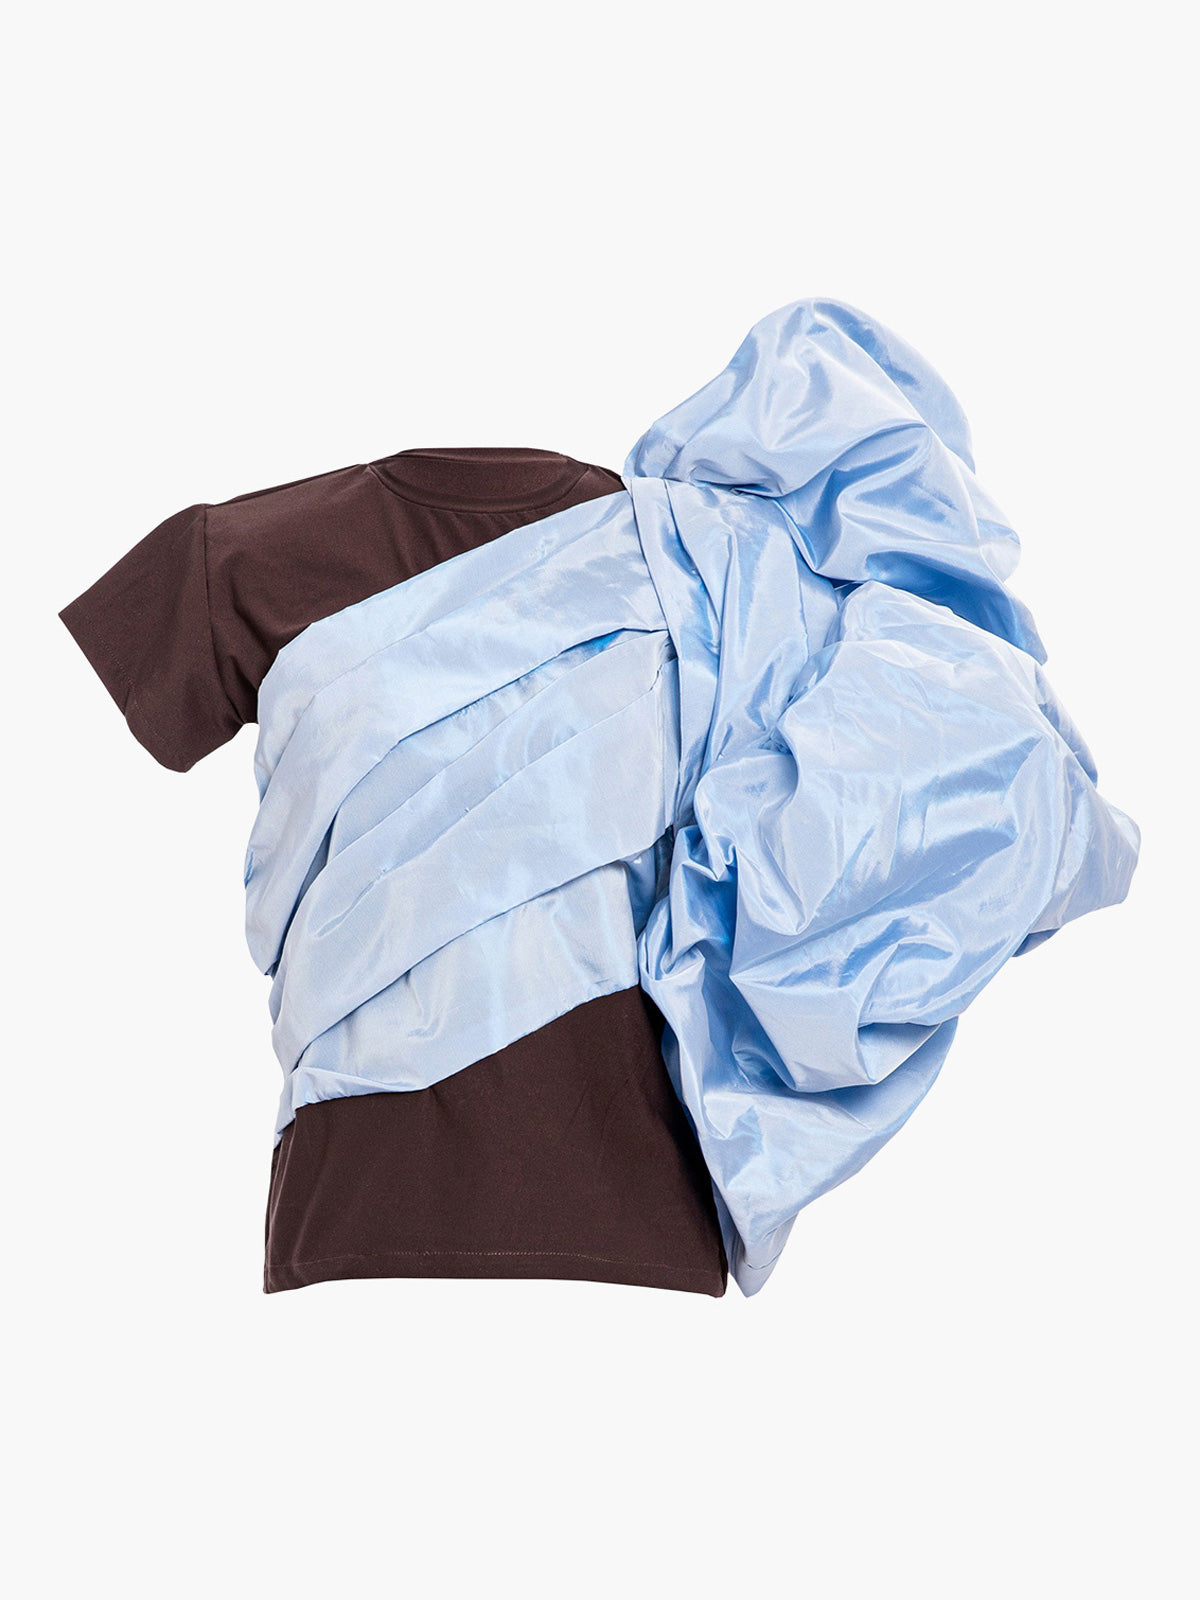 Abolengo T-Shirt | Brown With Blue